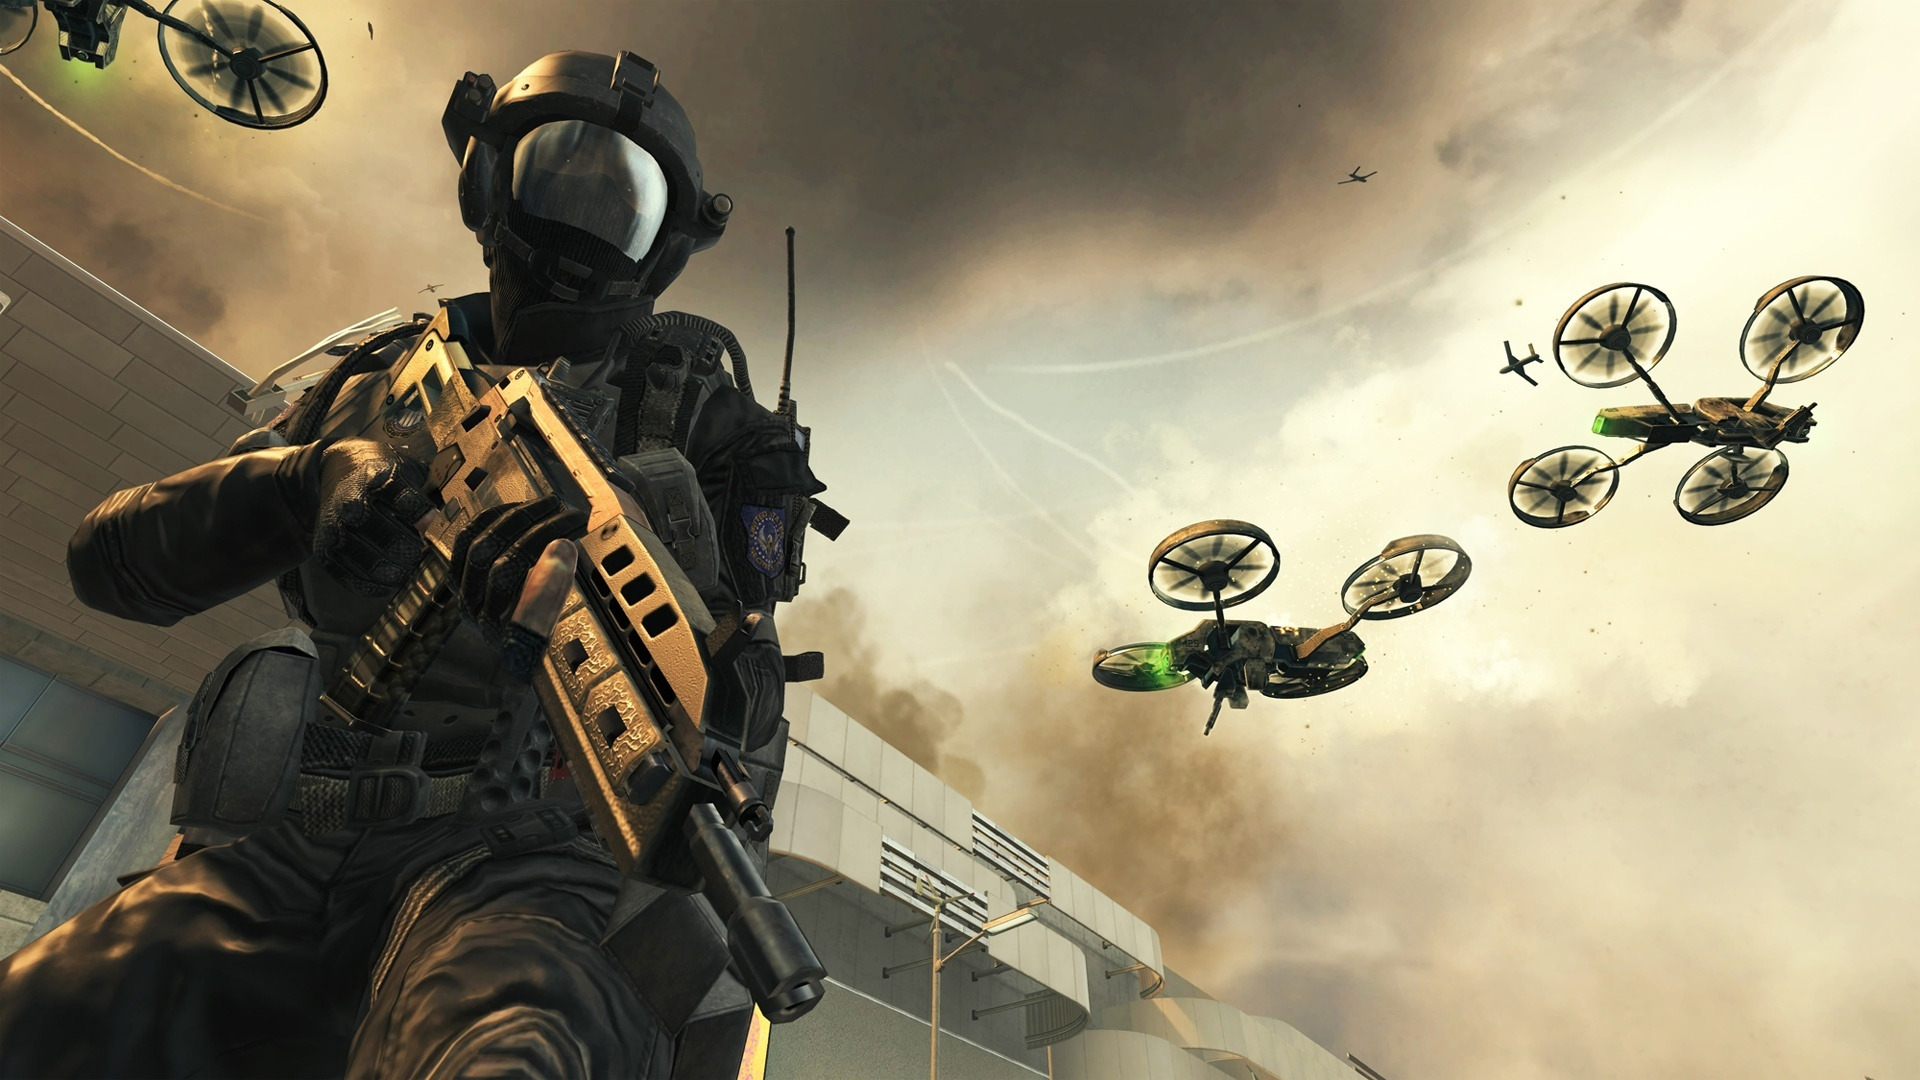 2560x1700 Call Of Duty Black Ops 2 Game Chromebook Pixel